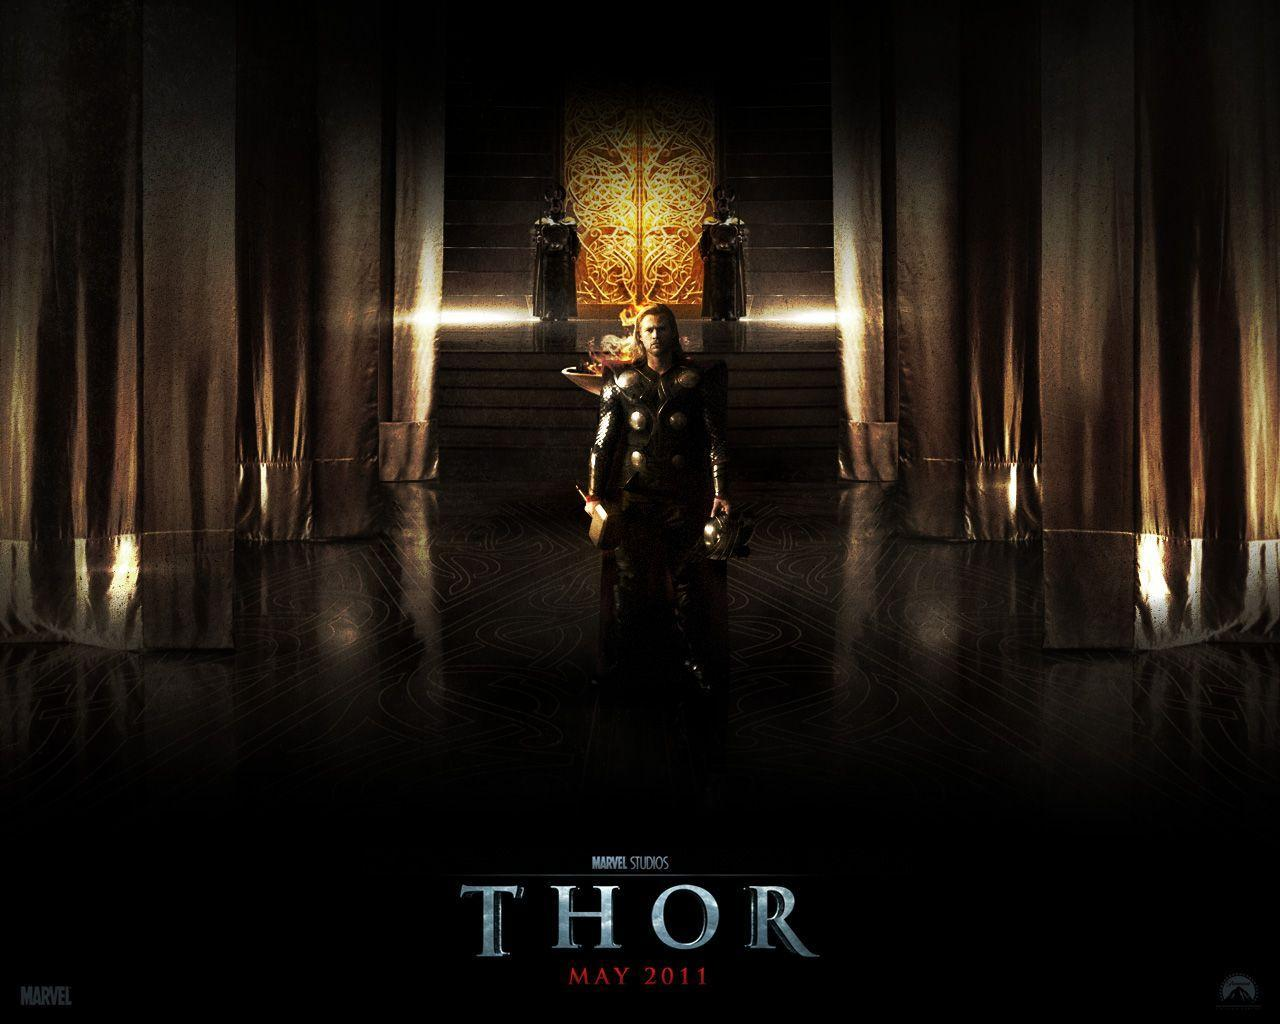 Image - Thor wallpaper 1280x1024 12.jpg | Marvel Movies | FANDOM ...